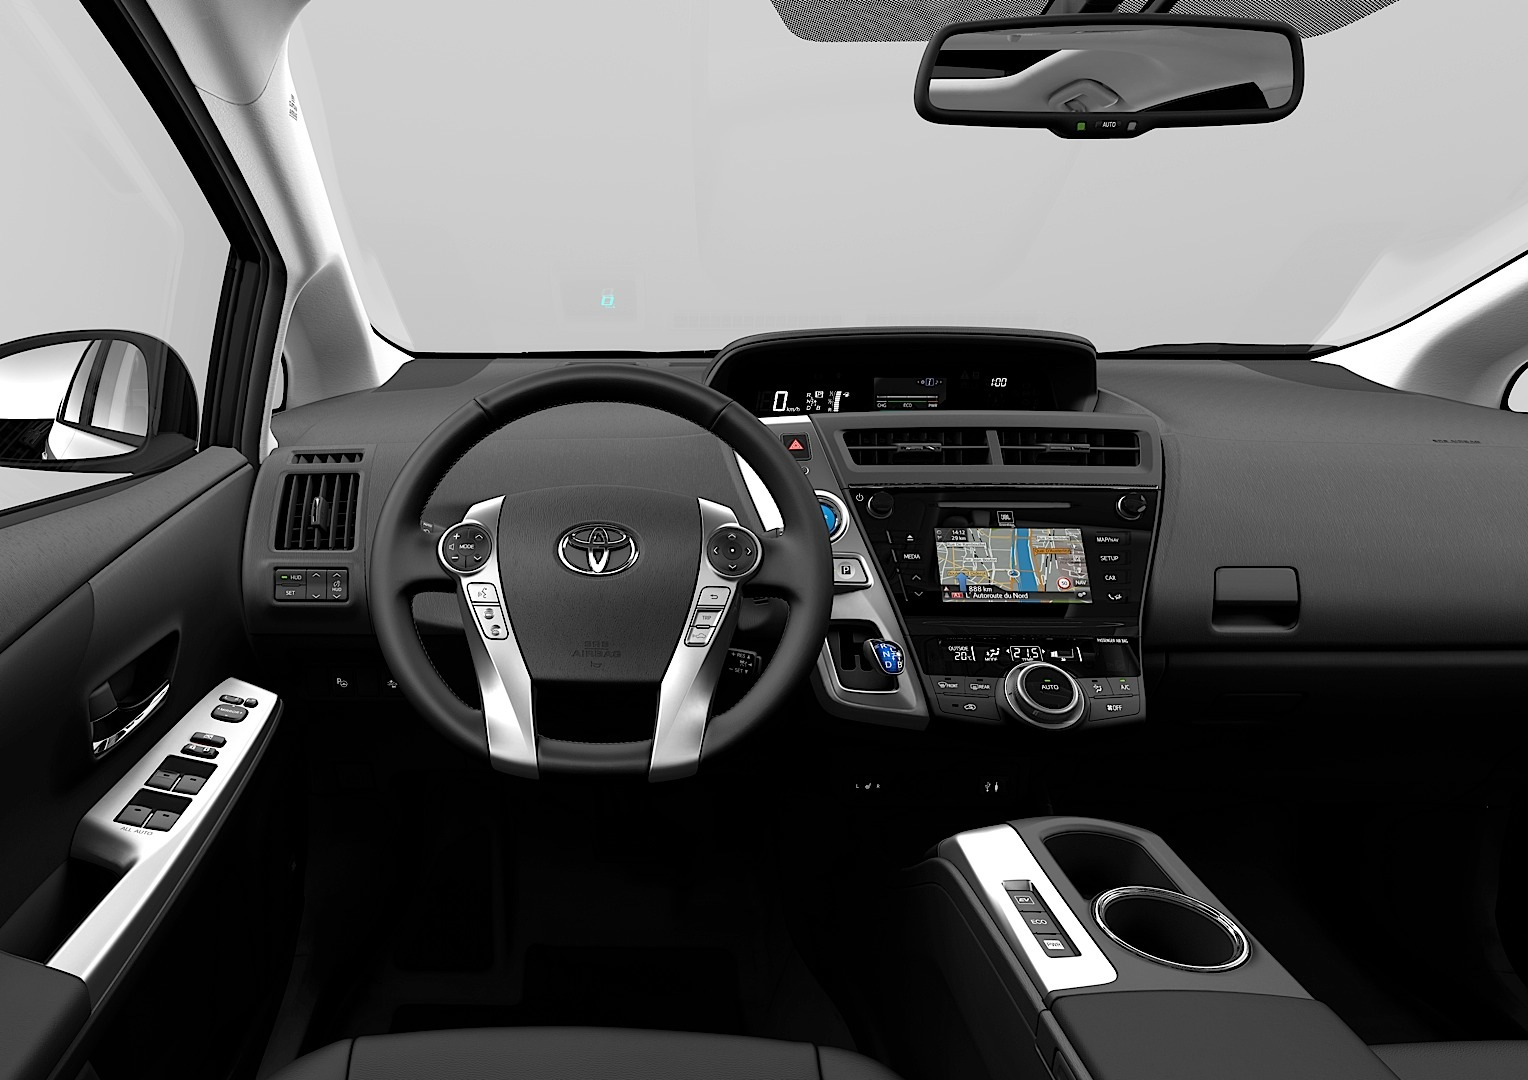 Toyota Prius v Gets an Angry Face for 2015 - autoevolution